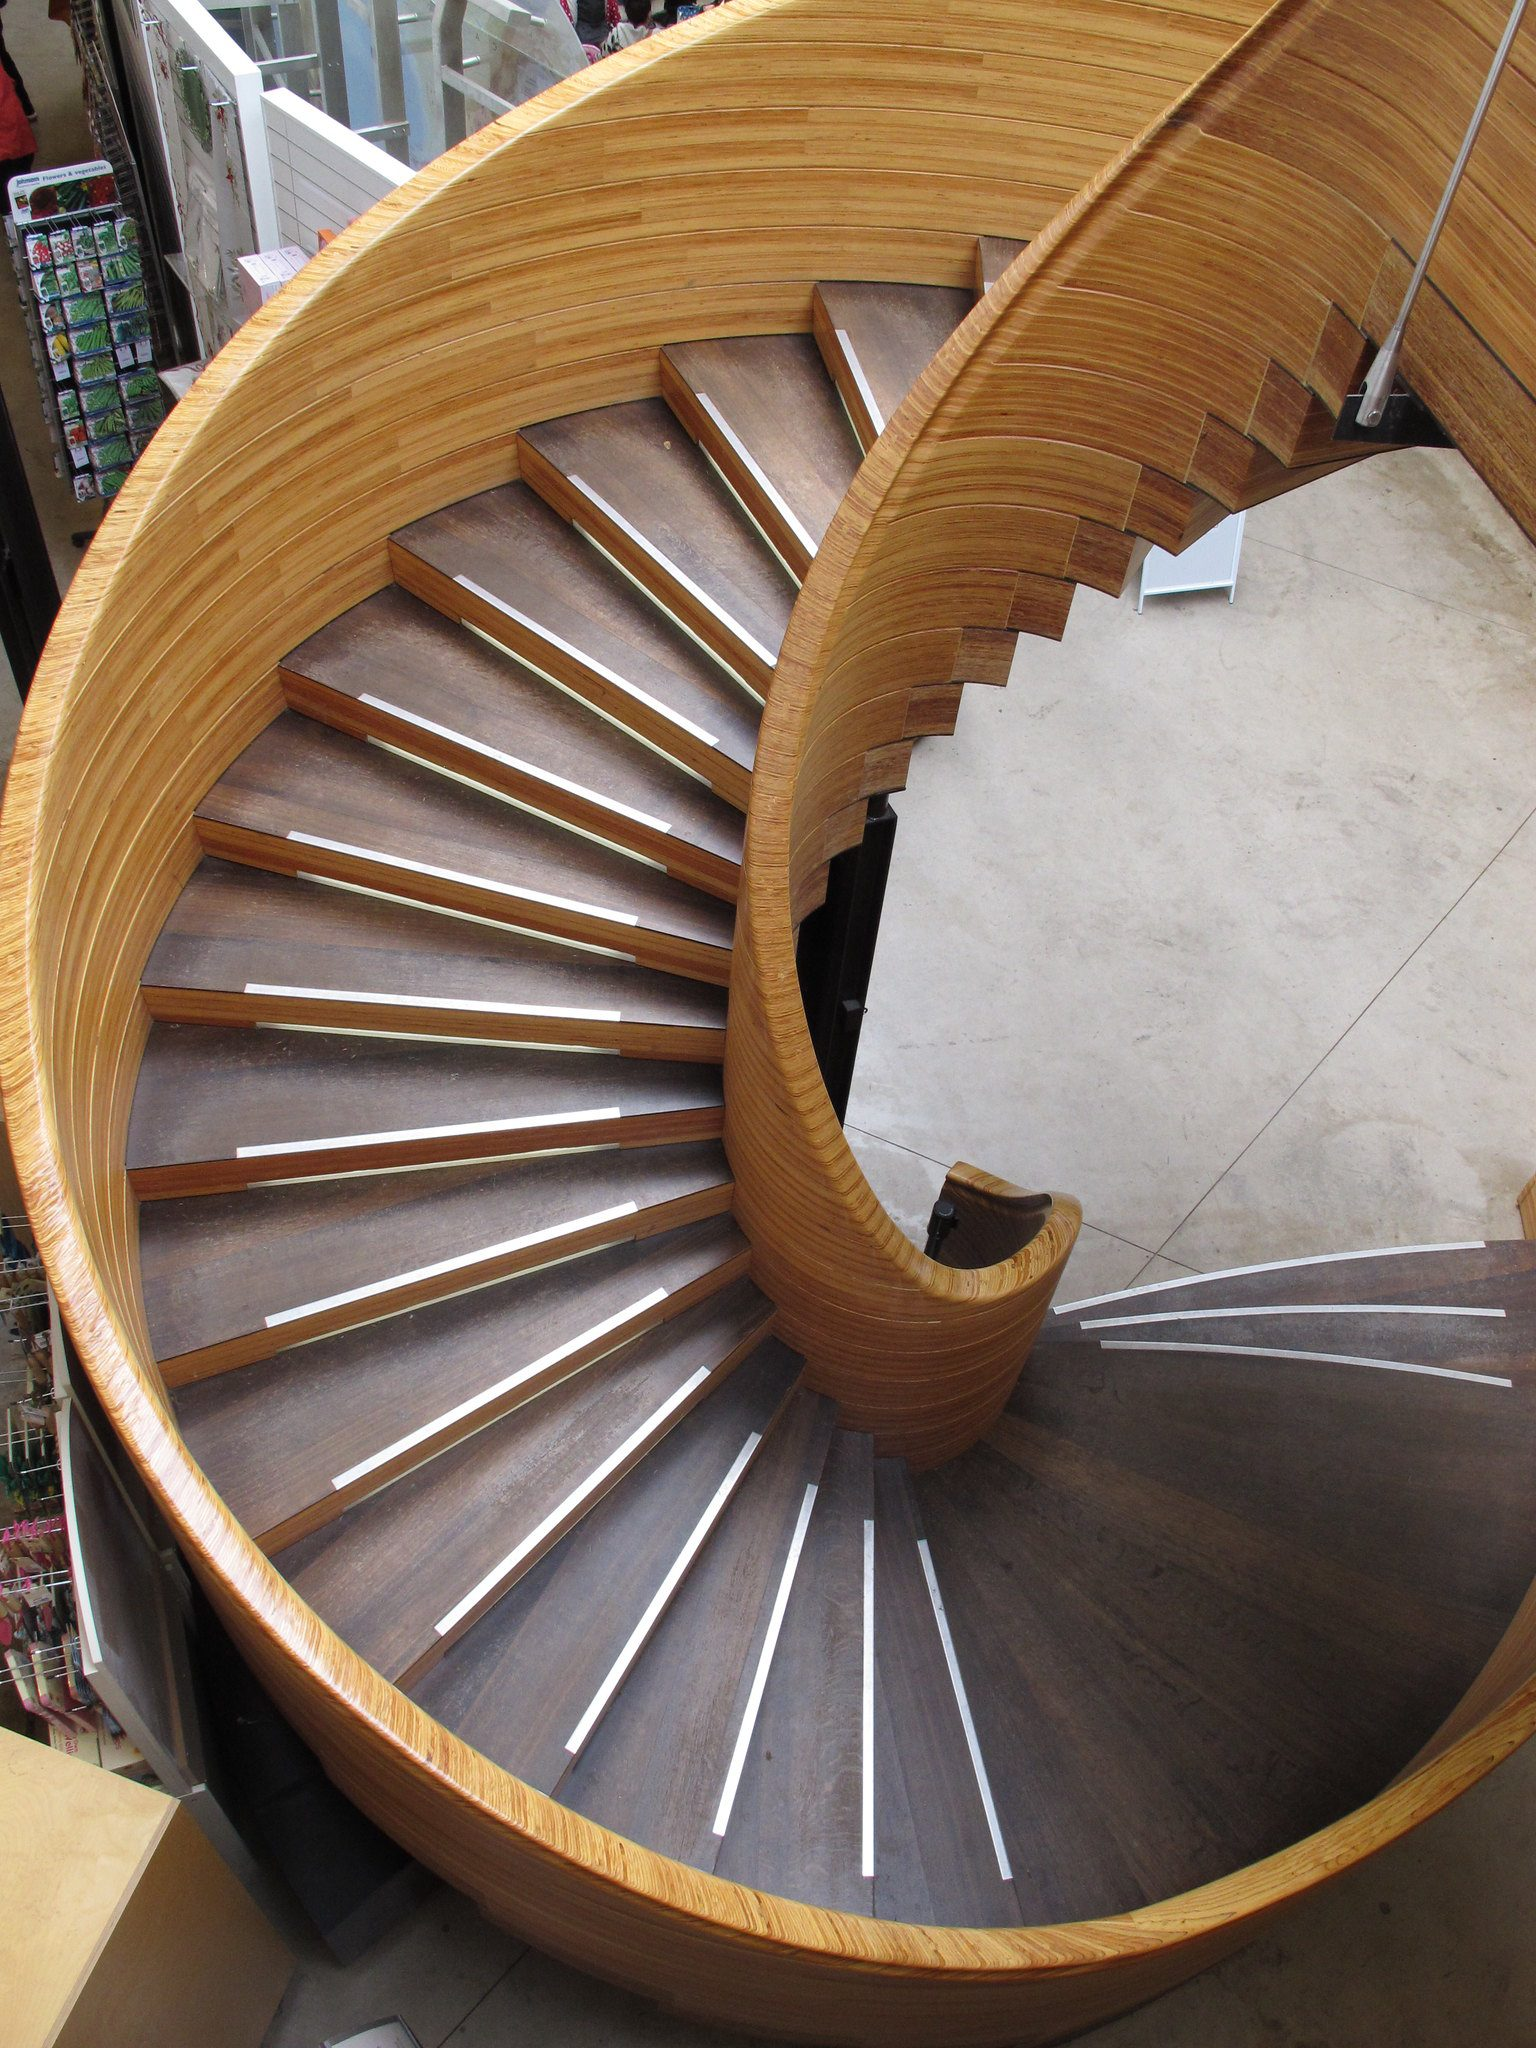 plywood stairs, staircase, laminate